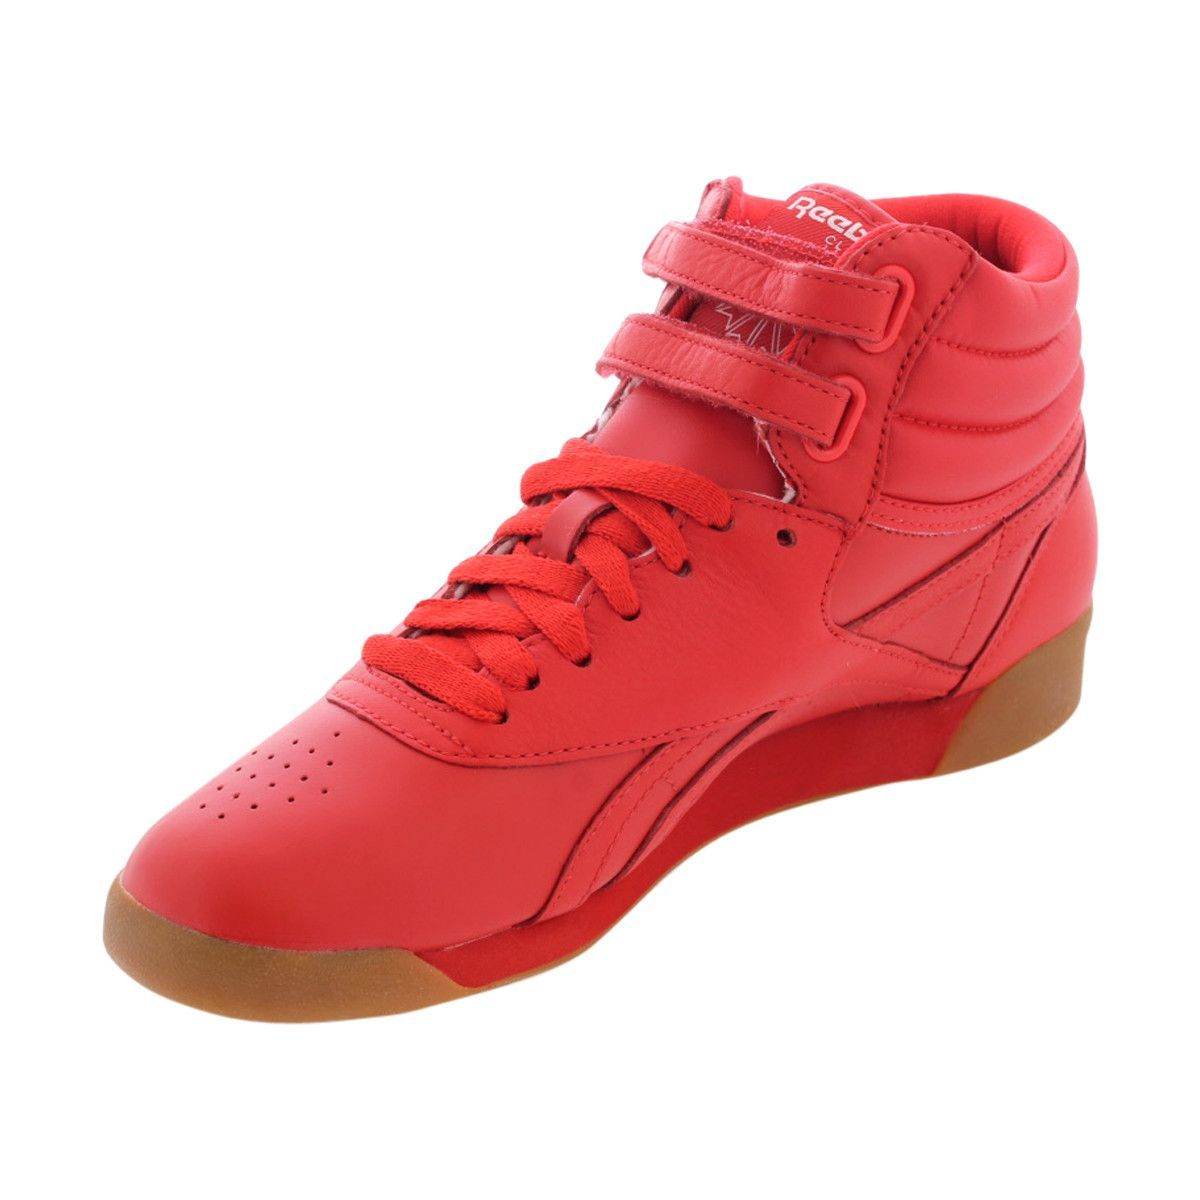 af588265072e Reebok - Women s Freestyle Hi Fitness Sneakers - Red White